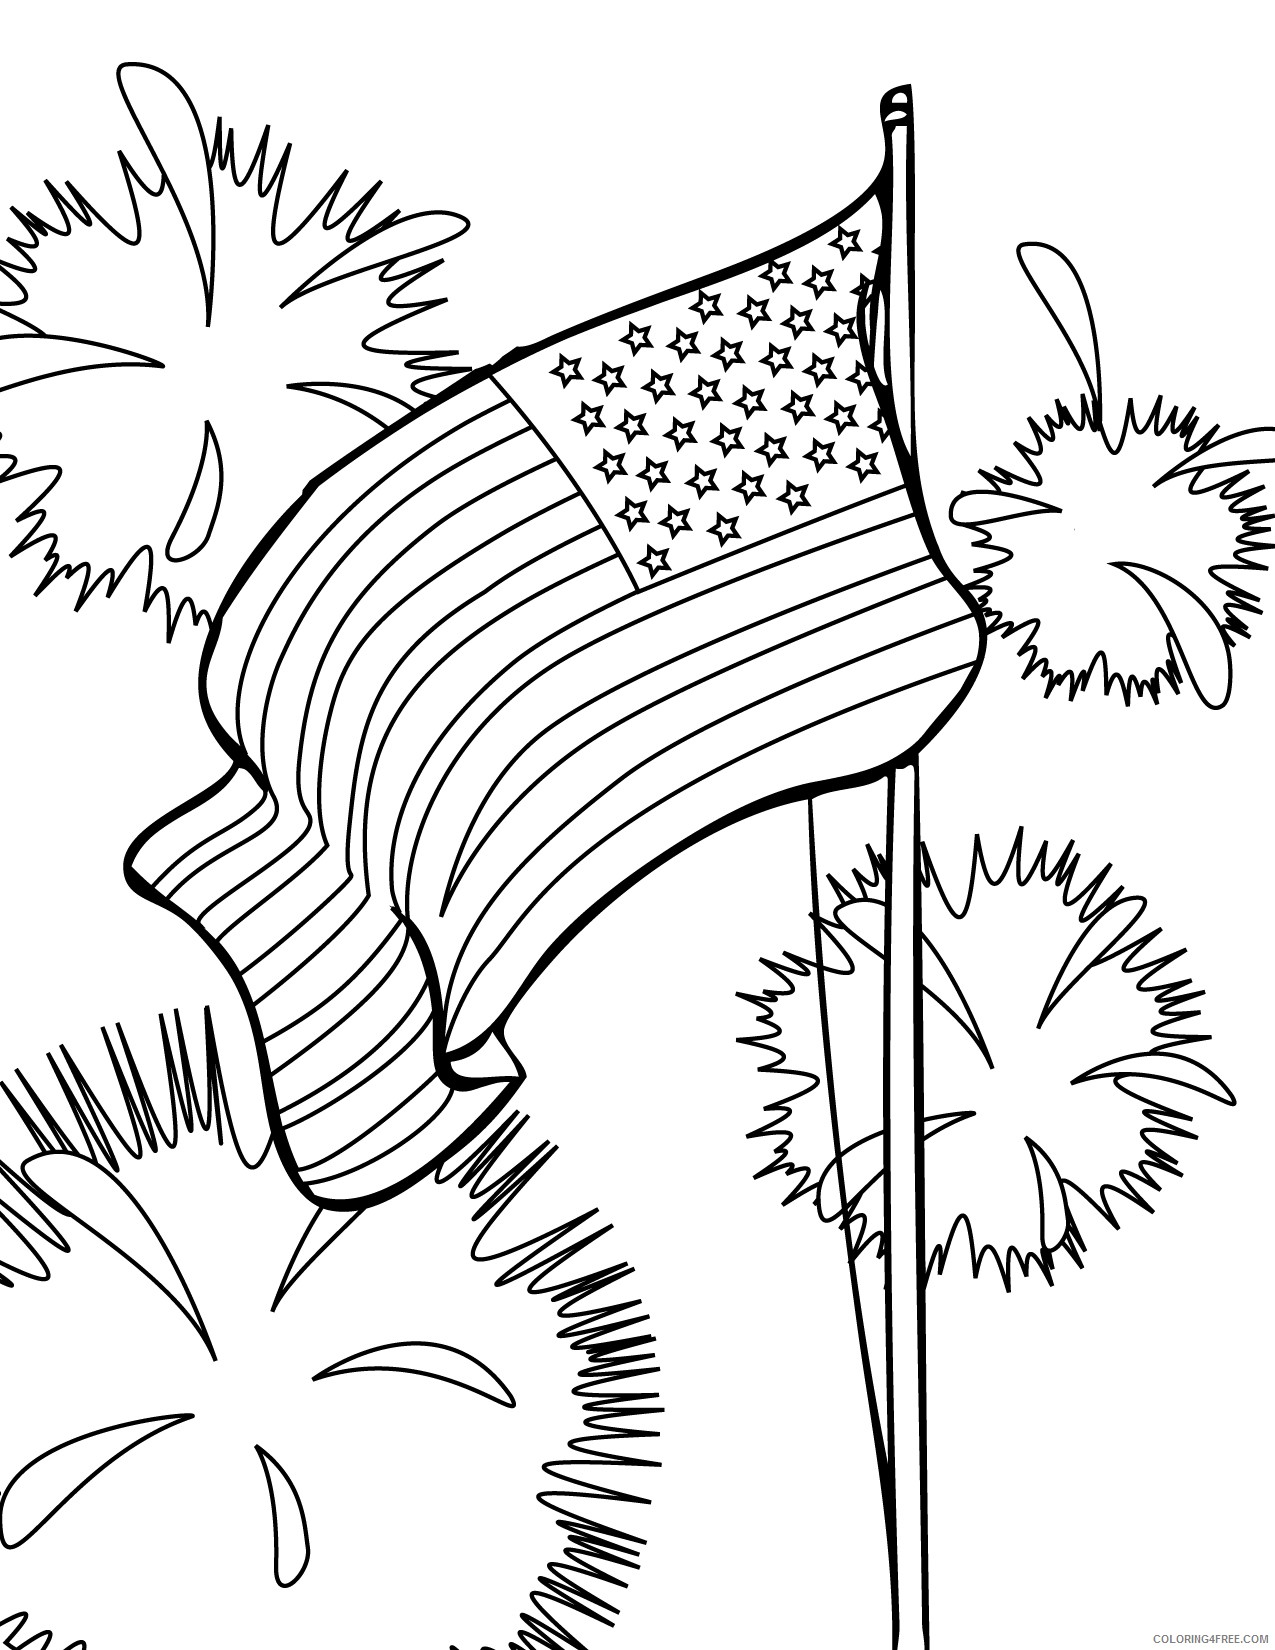 patriotic coloring pages american flag fireworks Coloring4free